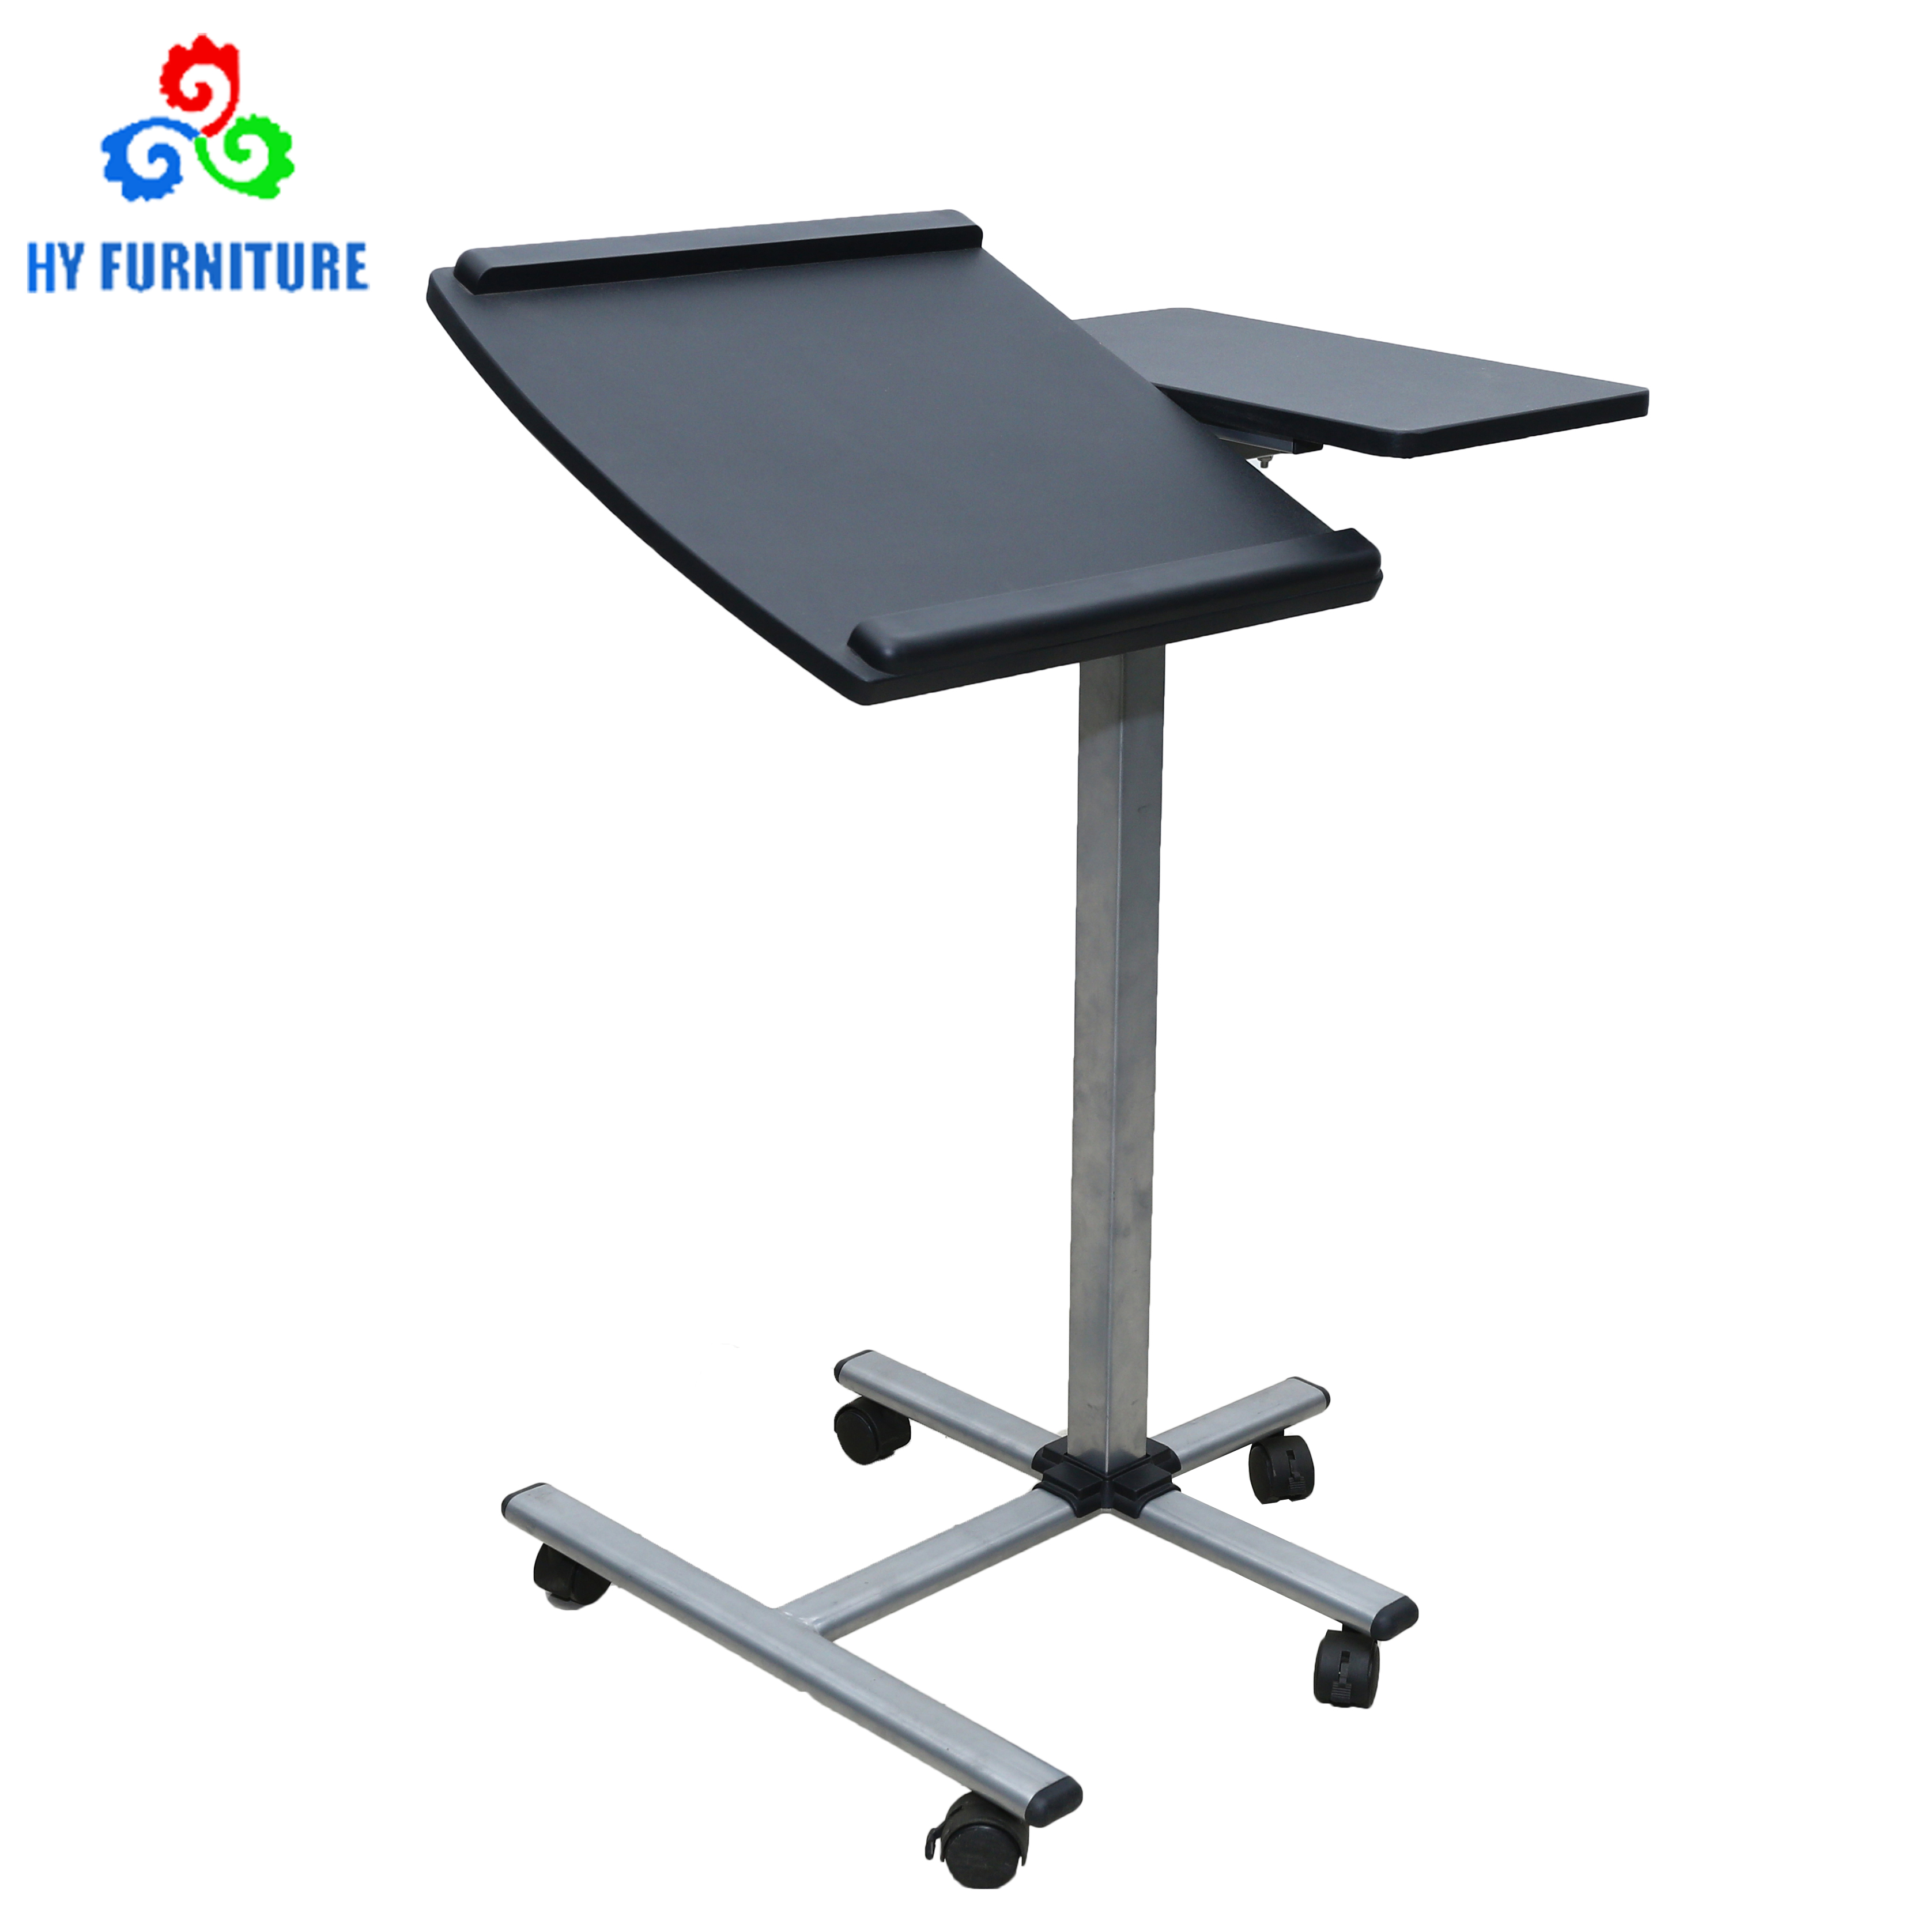 Movable adjustable laptop desks carts noteboke computer table stand with wheels